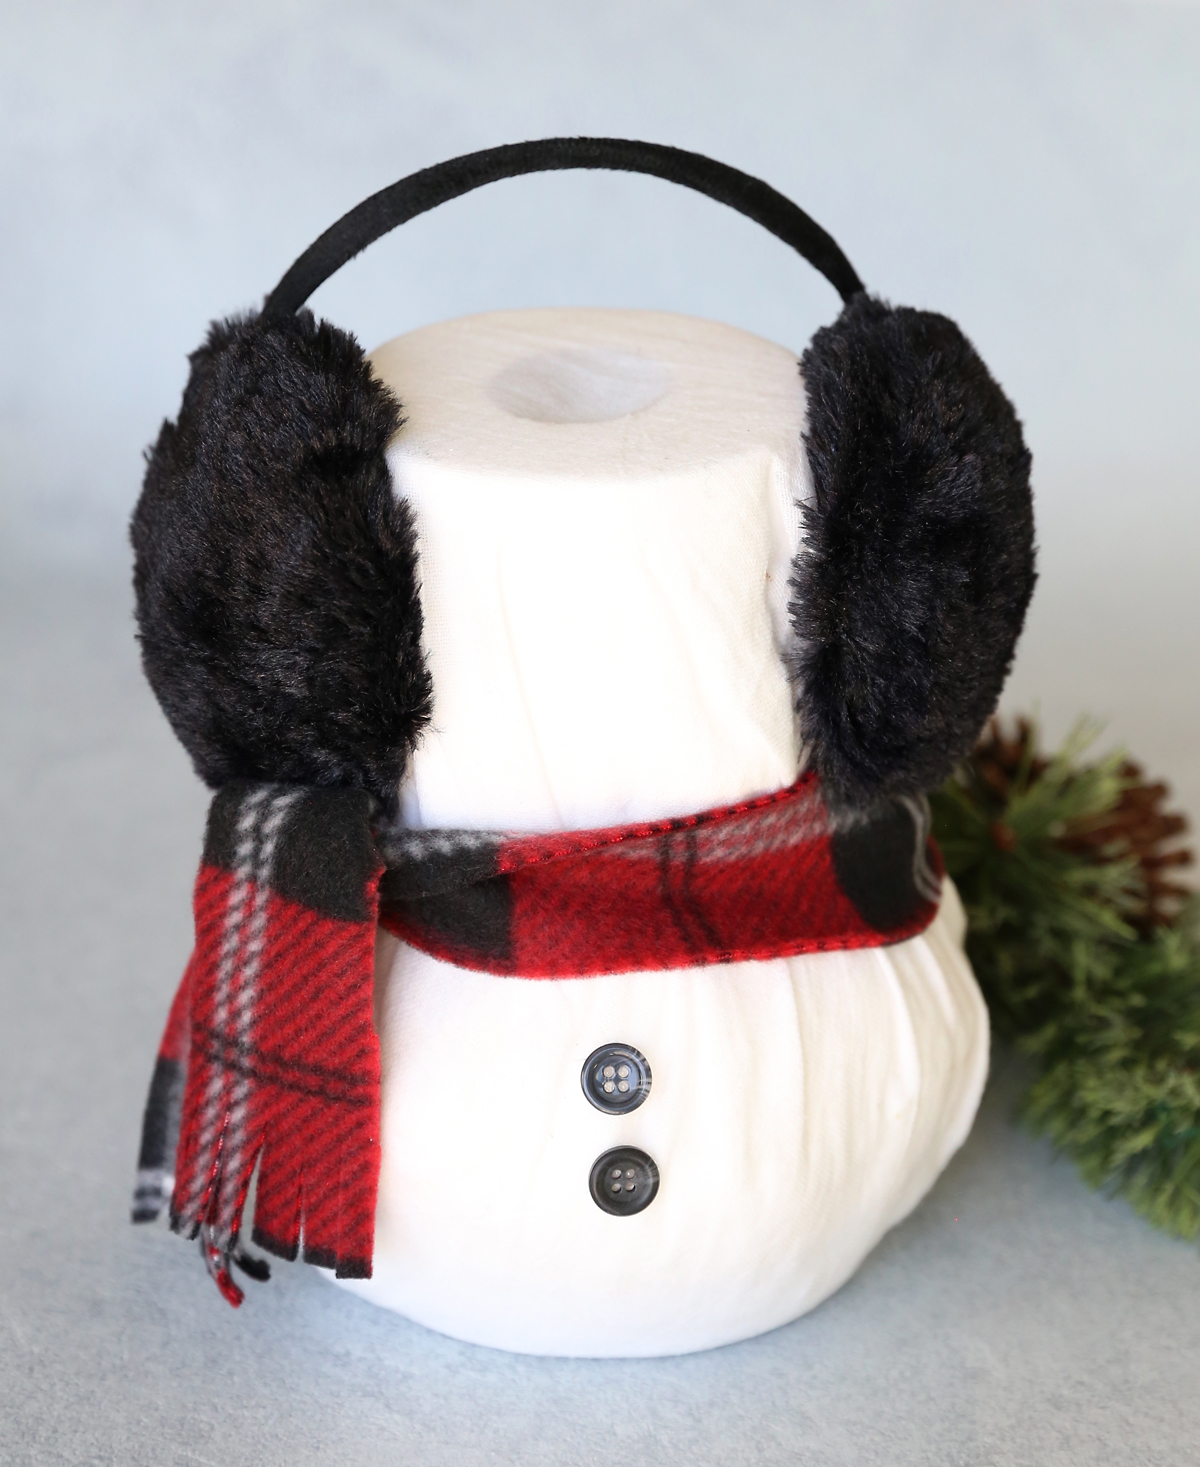 Snowman made from two rolls of toilet paper with fleece scarf and earmuffs